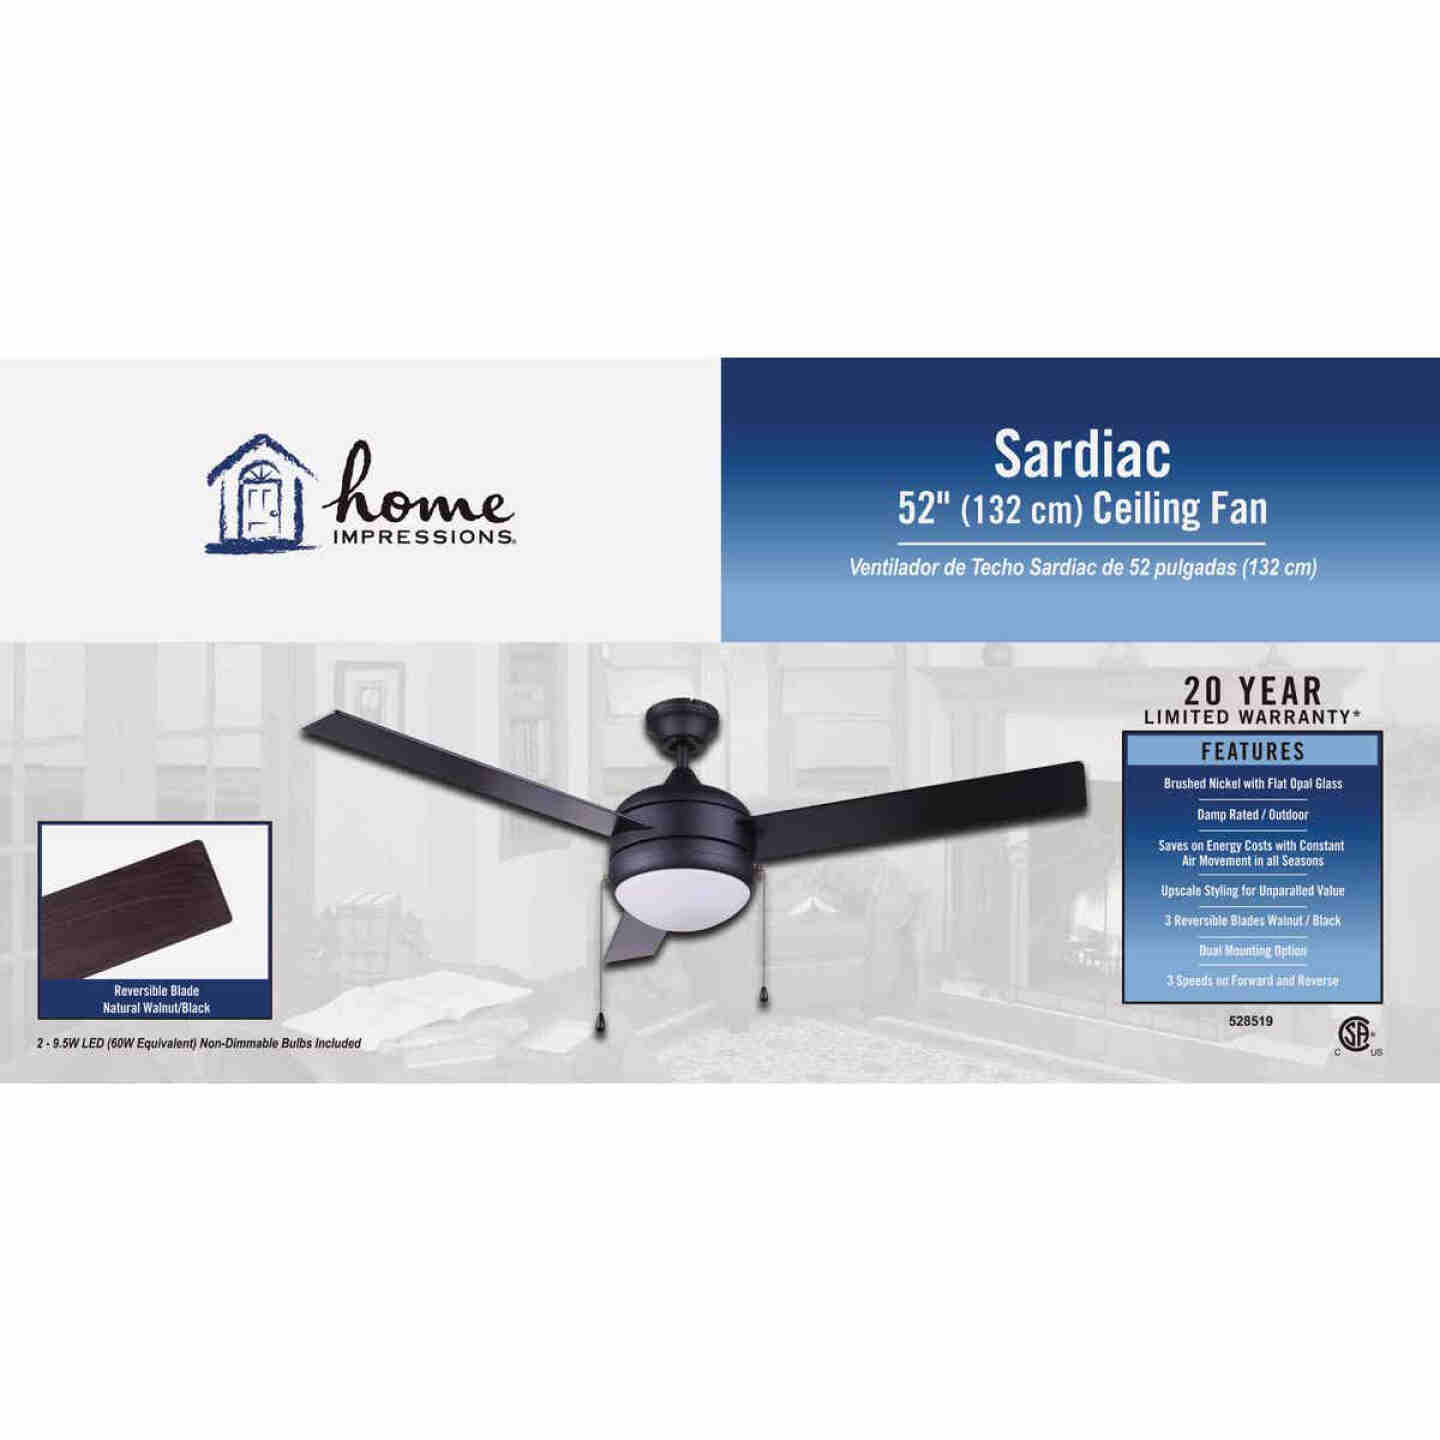 Home Impressions Sardiac 52 In. Brushed Nickel Outdoor Ceiling Fan with Light Kit Image 2